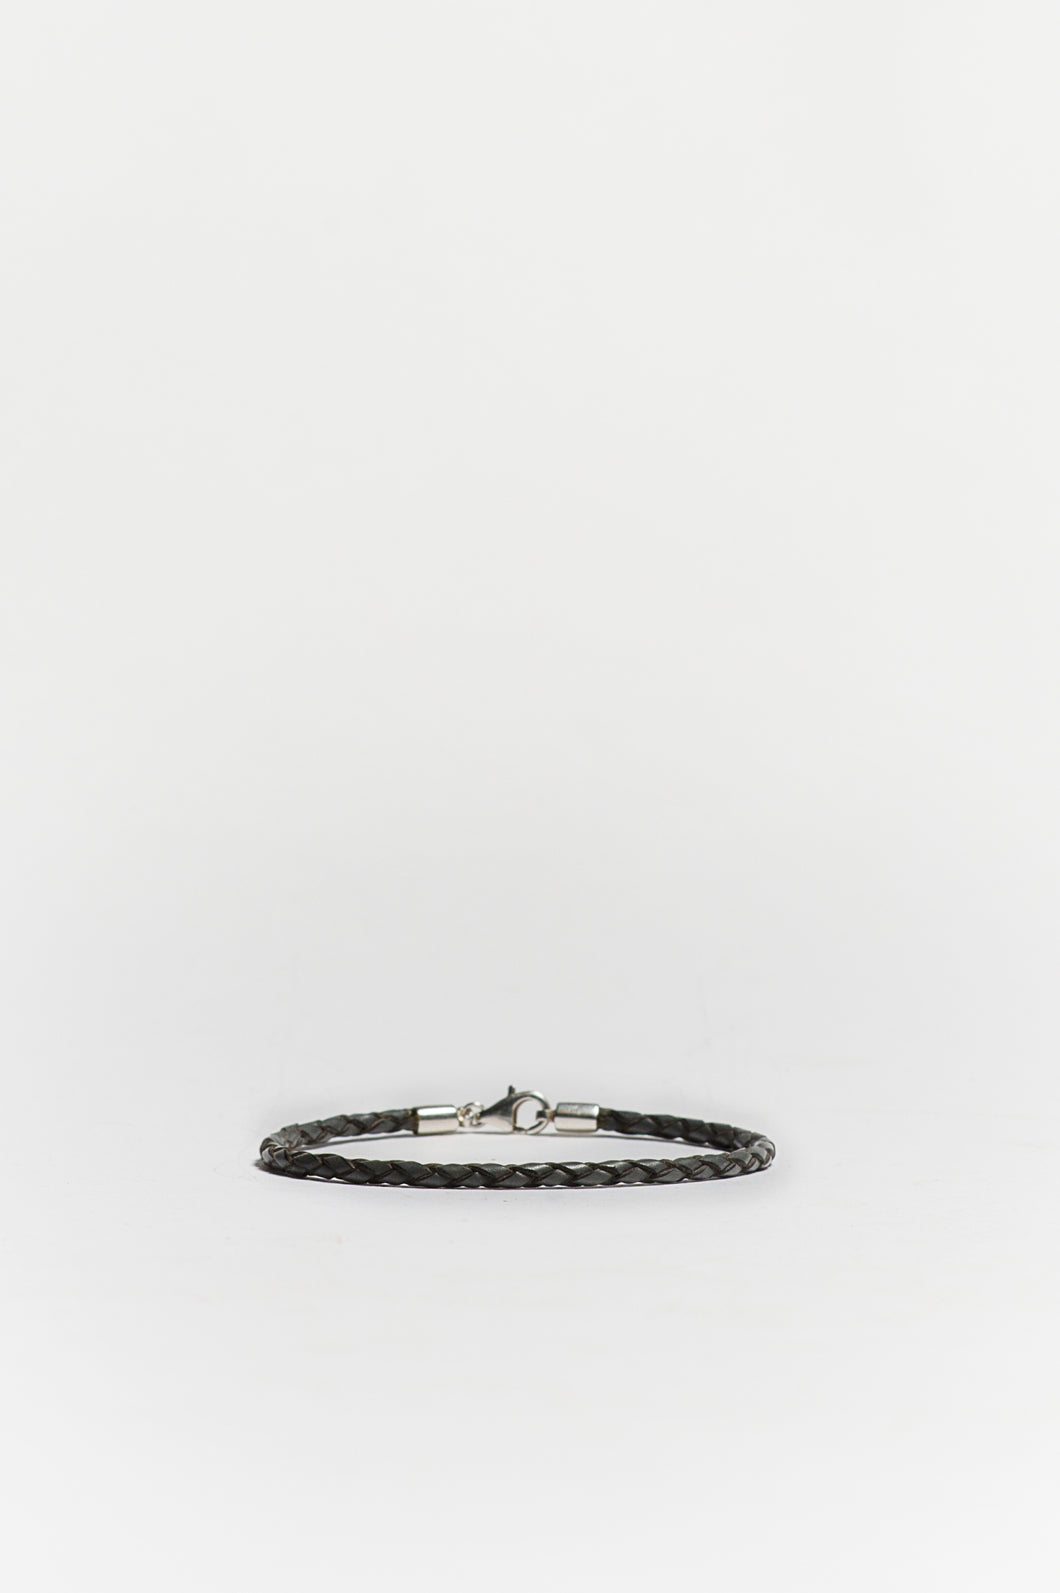 Woven Leather Bracelet in Grey